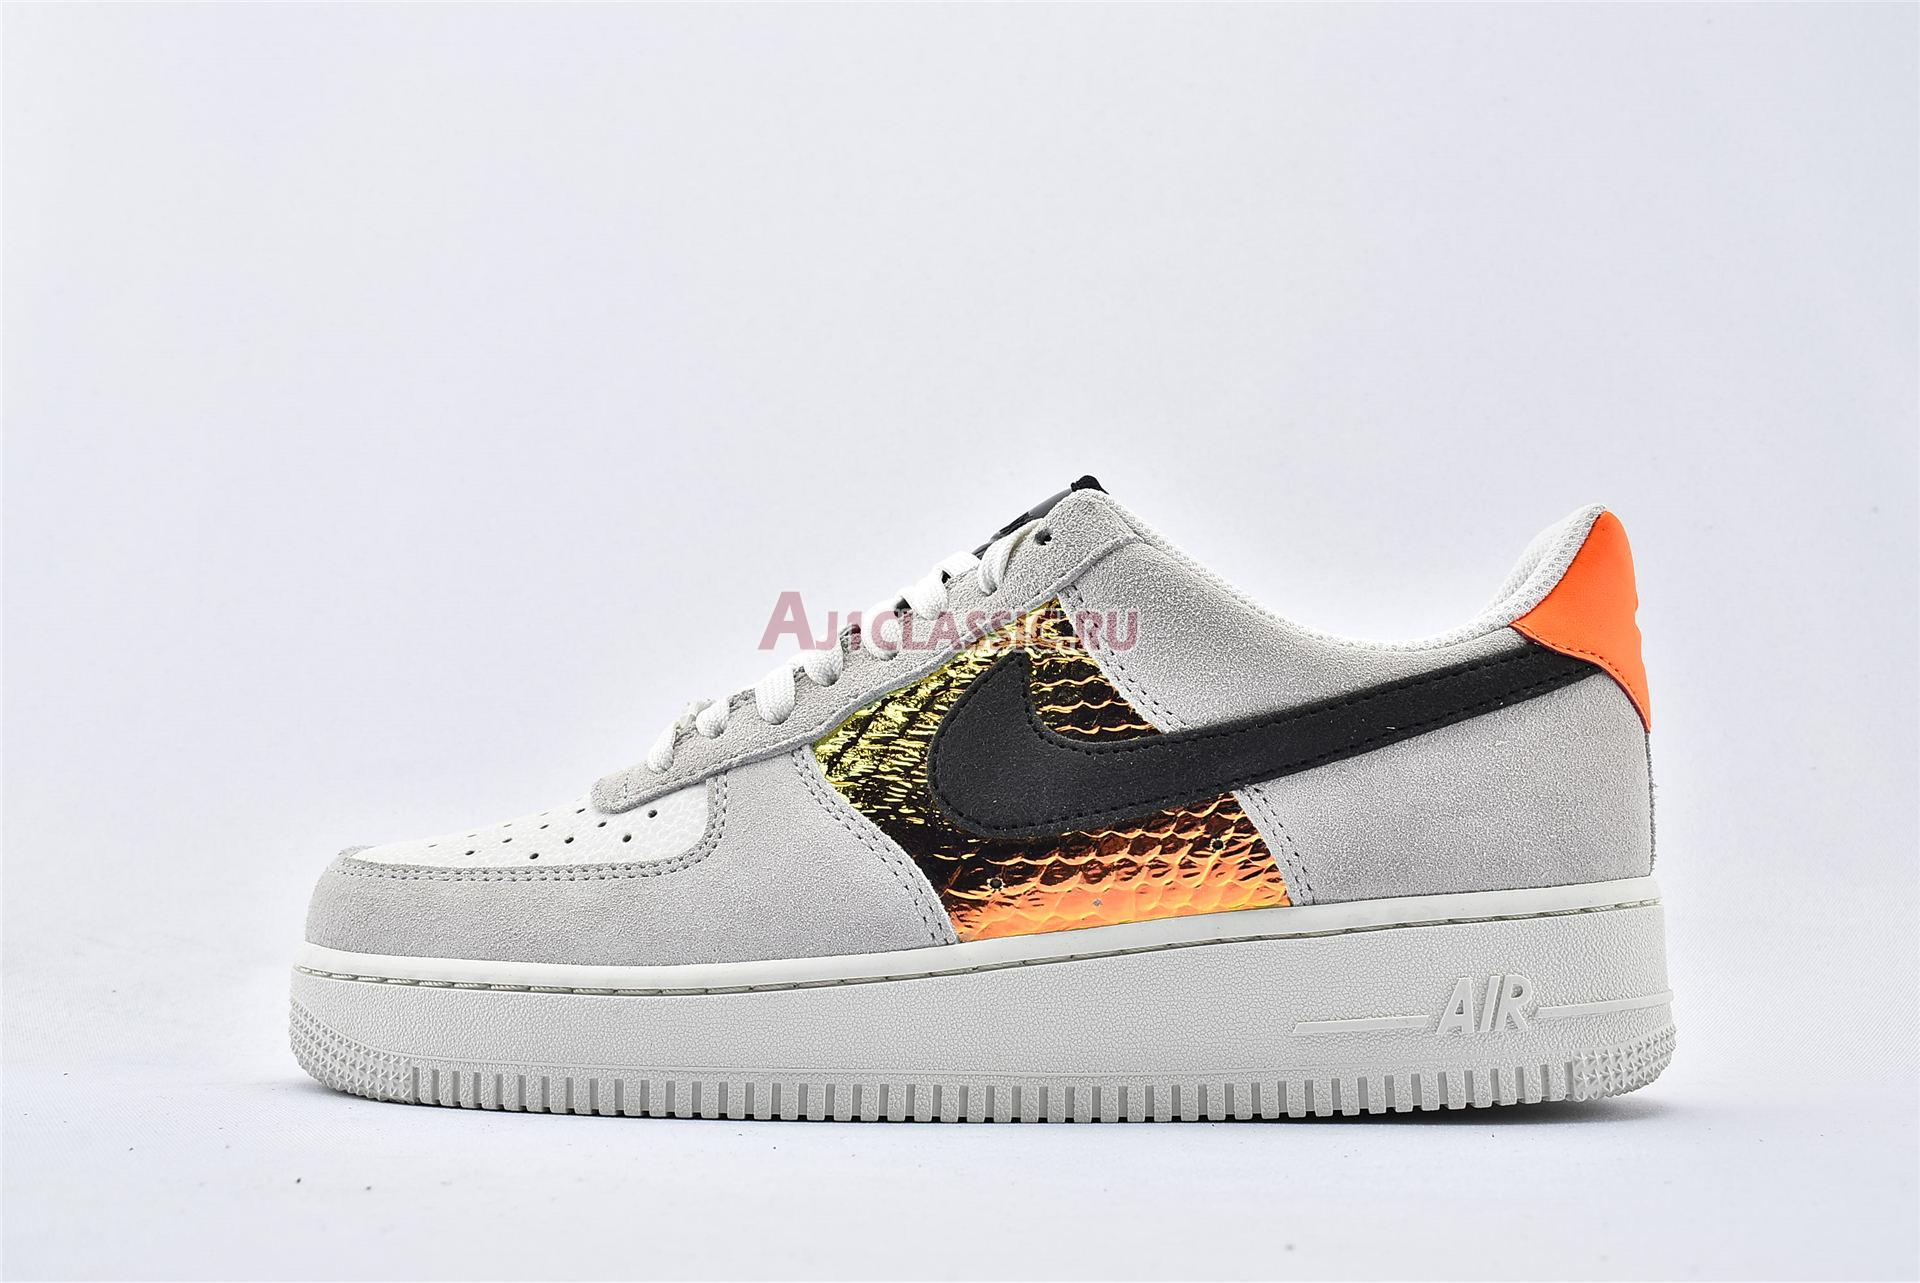 """Nike Air Force 1 Low """"Iridescent Snakeskin"""" CW2657-001"""